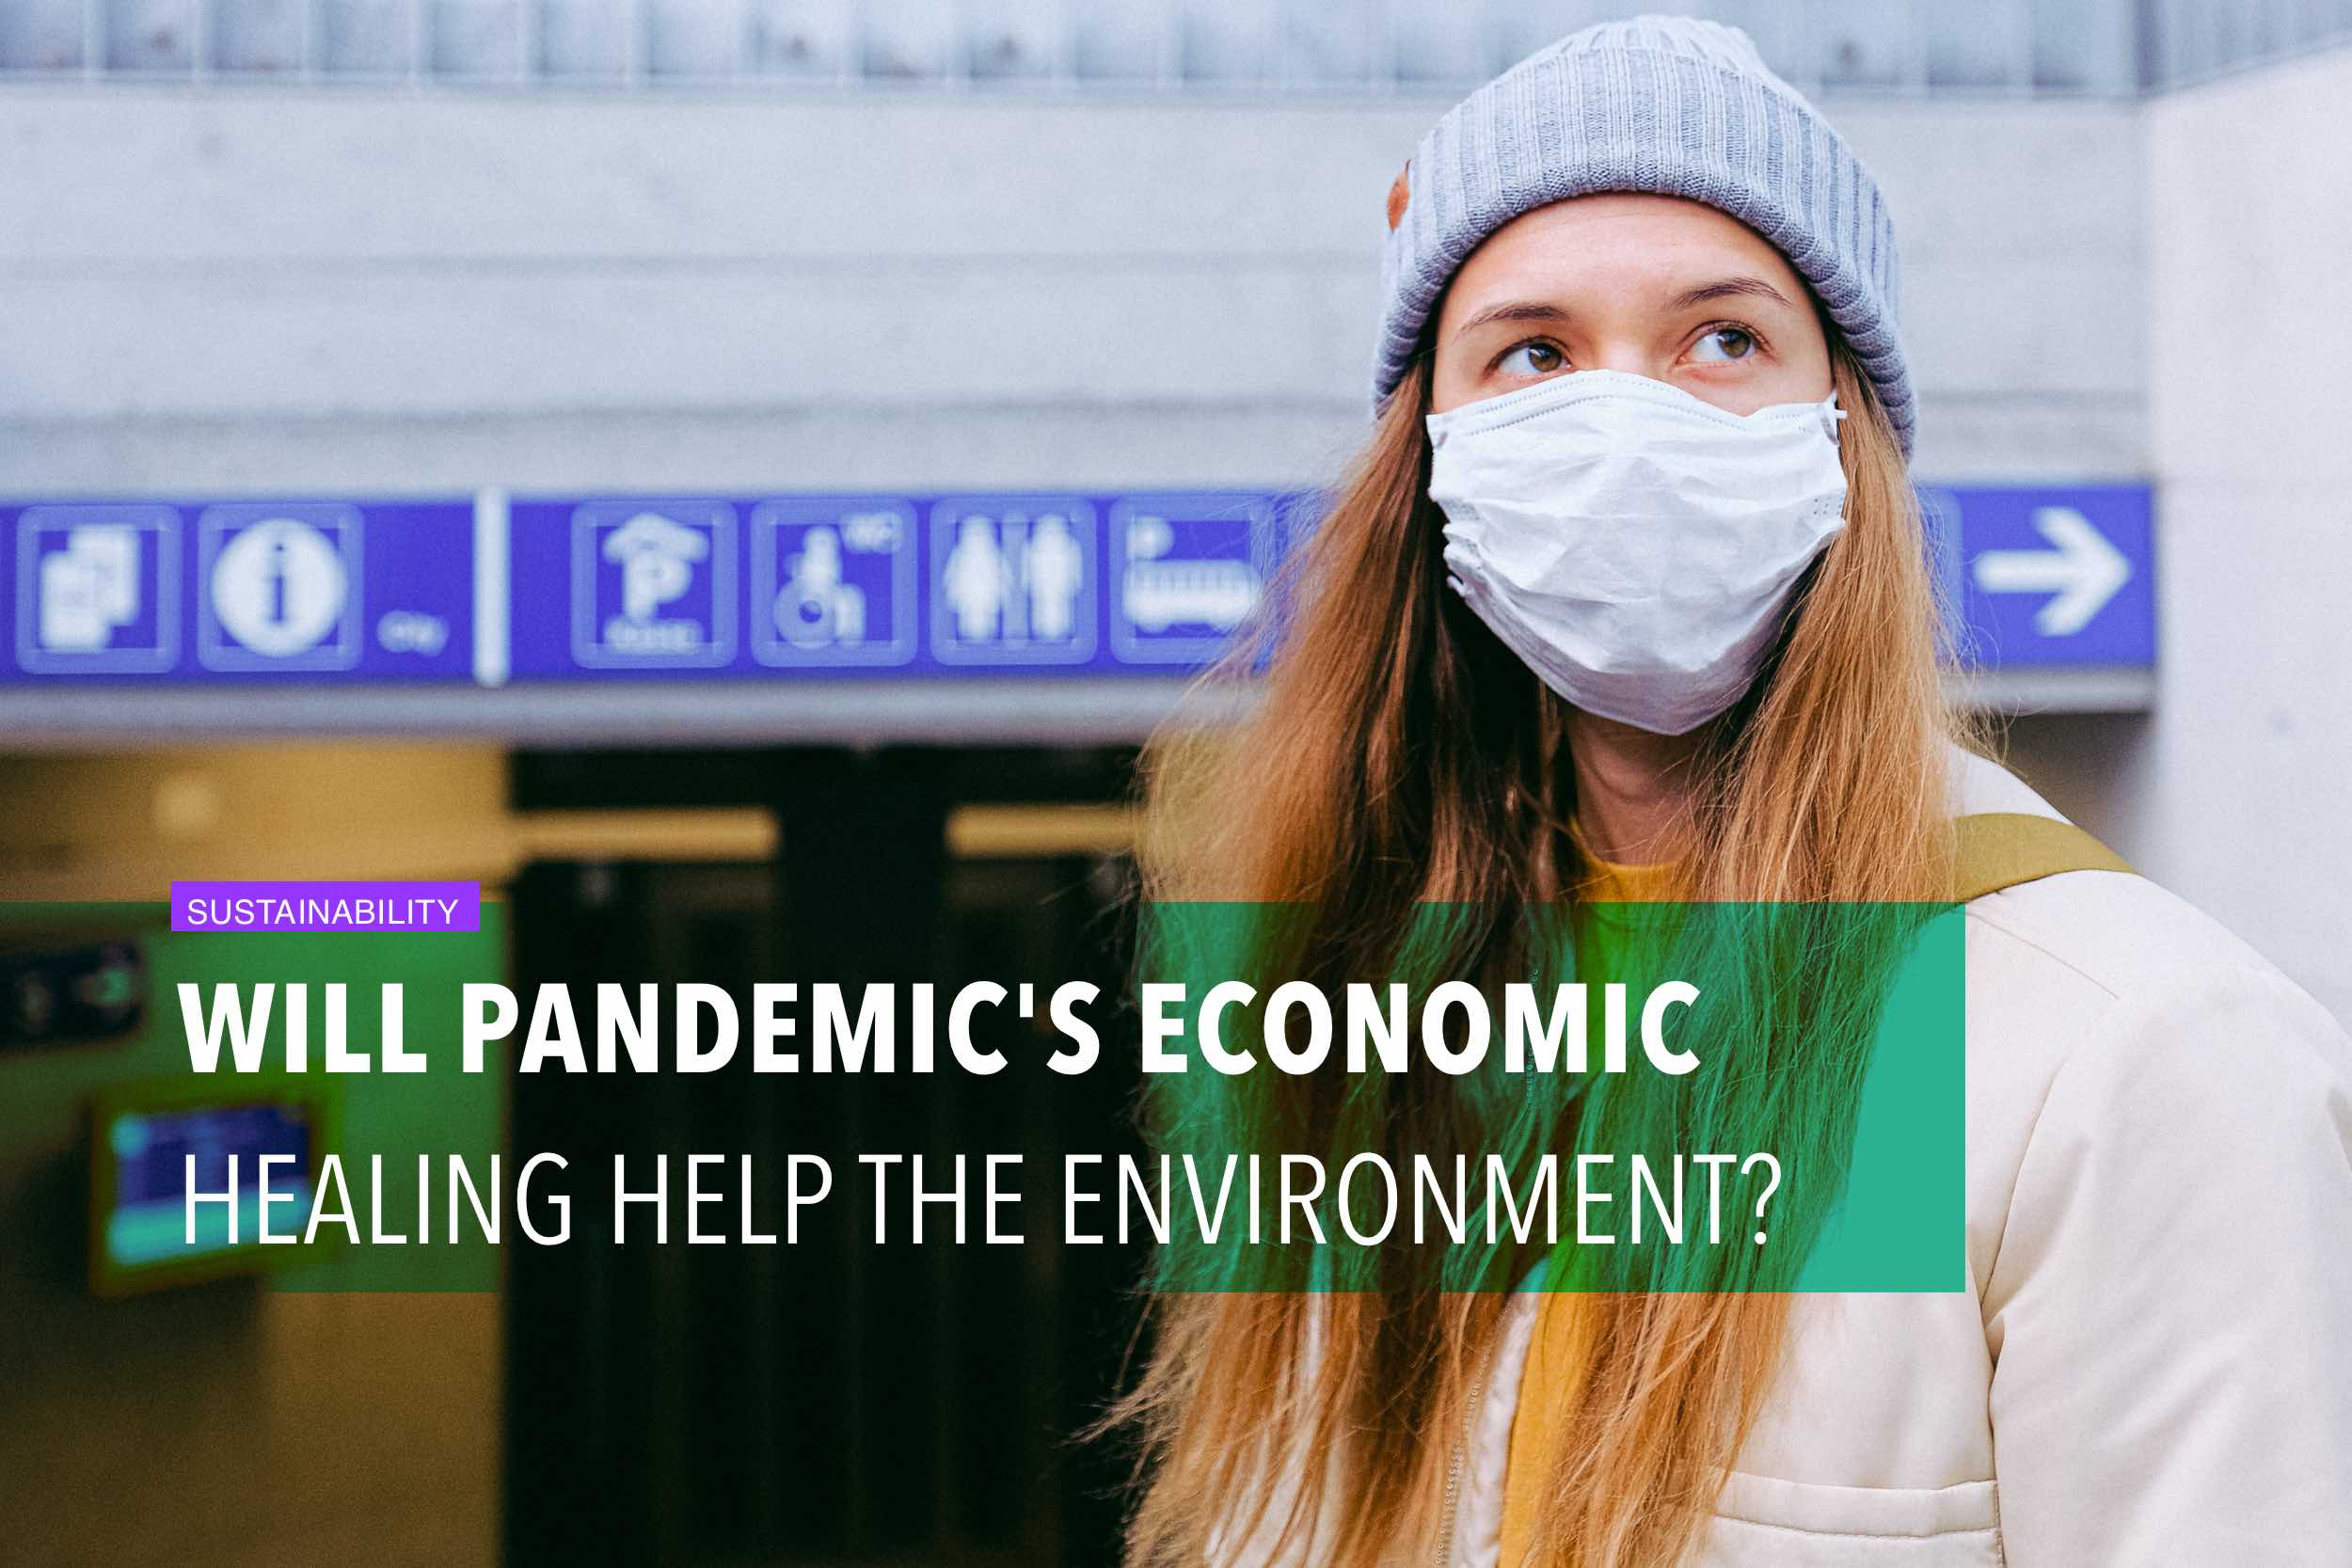 Will pandemic's economic healing help the environment?